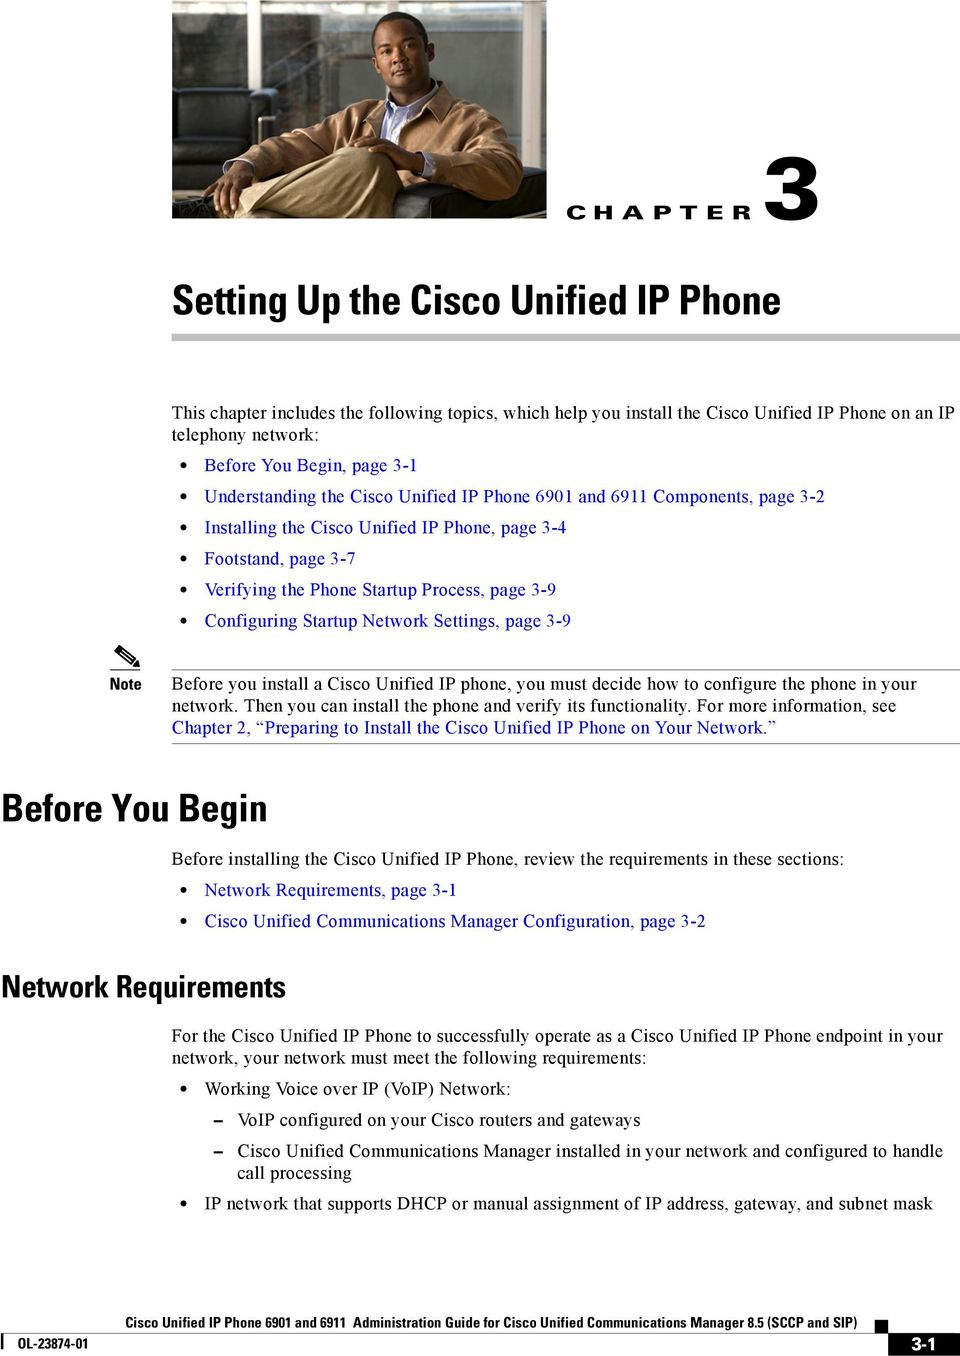 Note Before you install a Cisco Unified IP phone, you must decide how to configure the phone in your network. Then you can install the phone and verify its functionality.